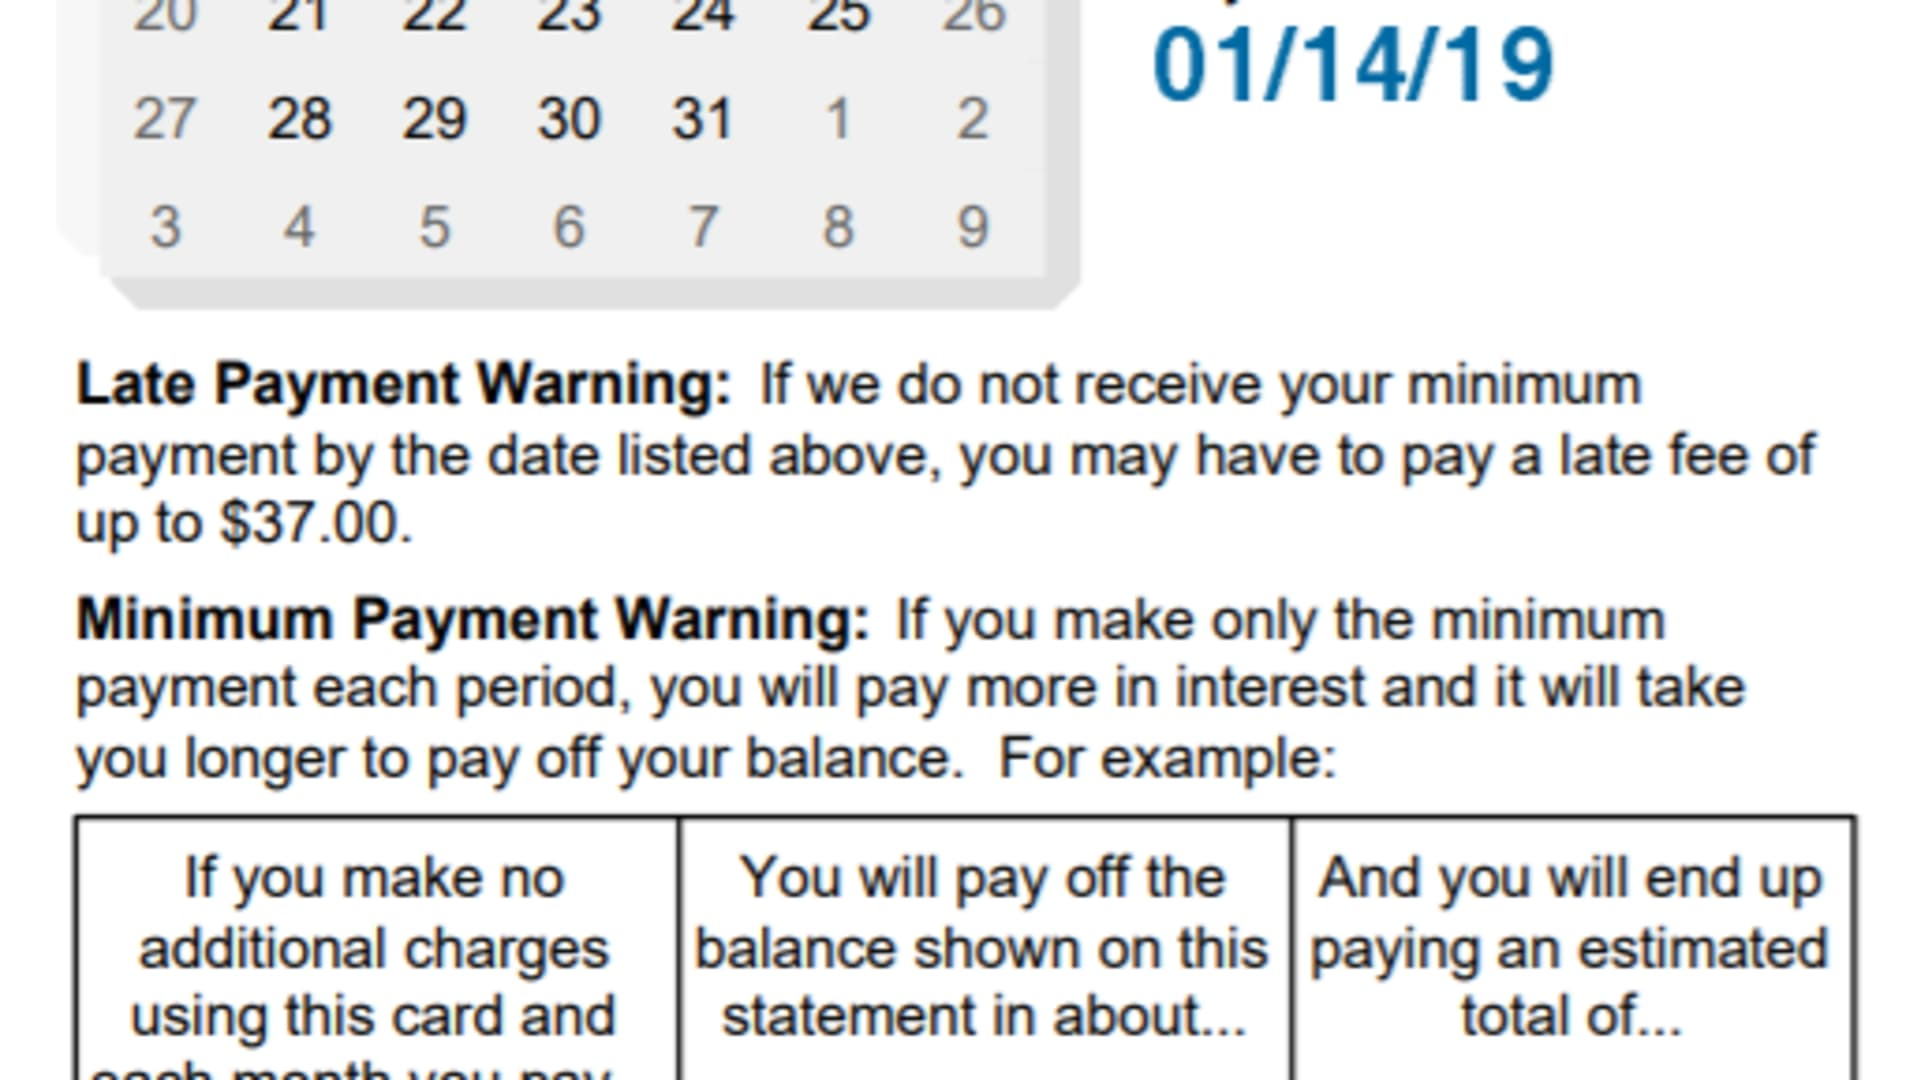 Card issuers include your payment due date and minimum payment warnings on your monthly balance statement.